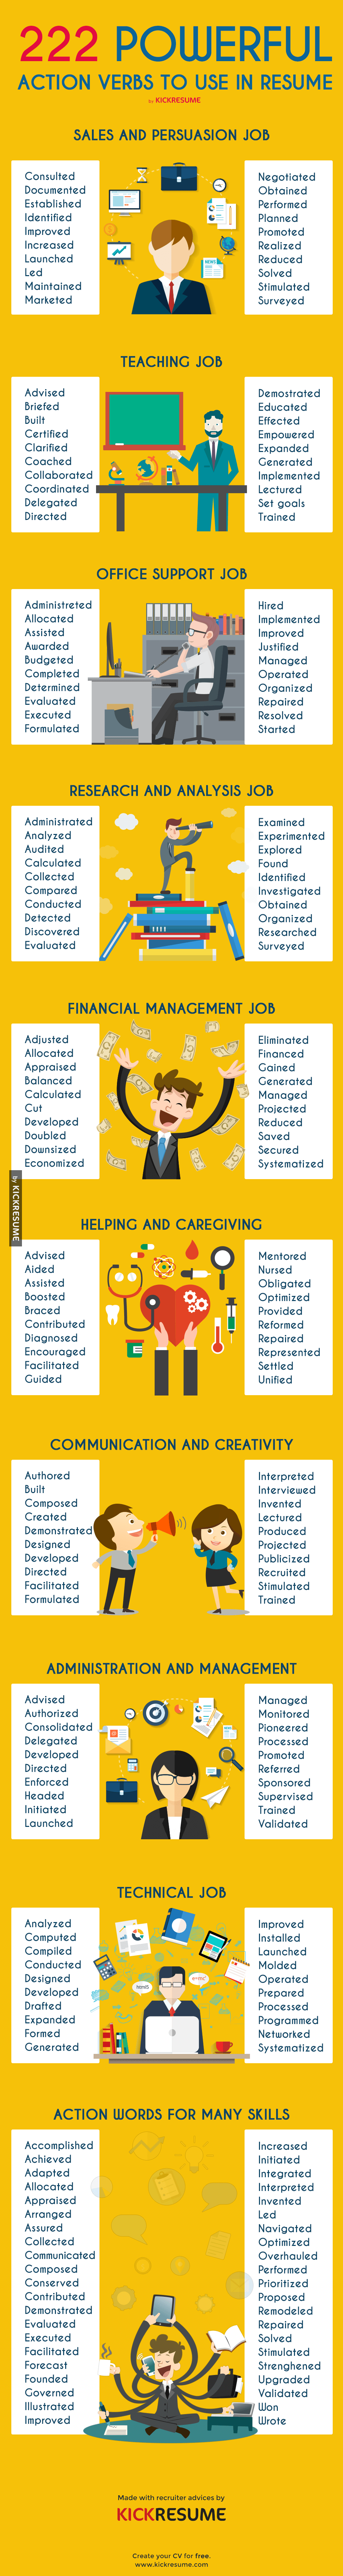 Superior 200+ Powerful Action Verbs Perfect For Your Resume [Infographic] | The  Savvy Intern